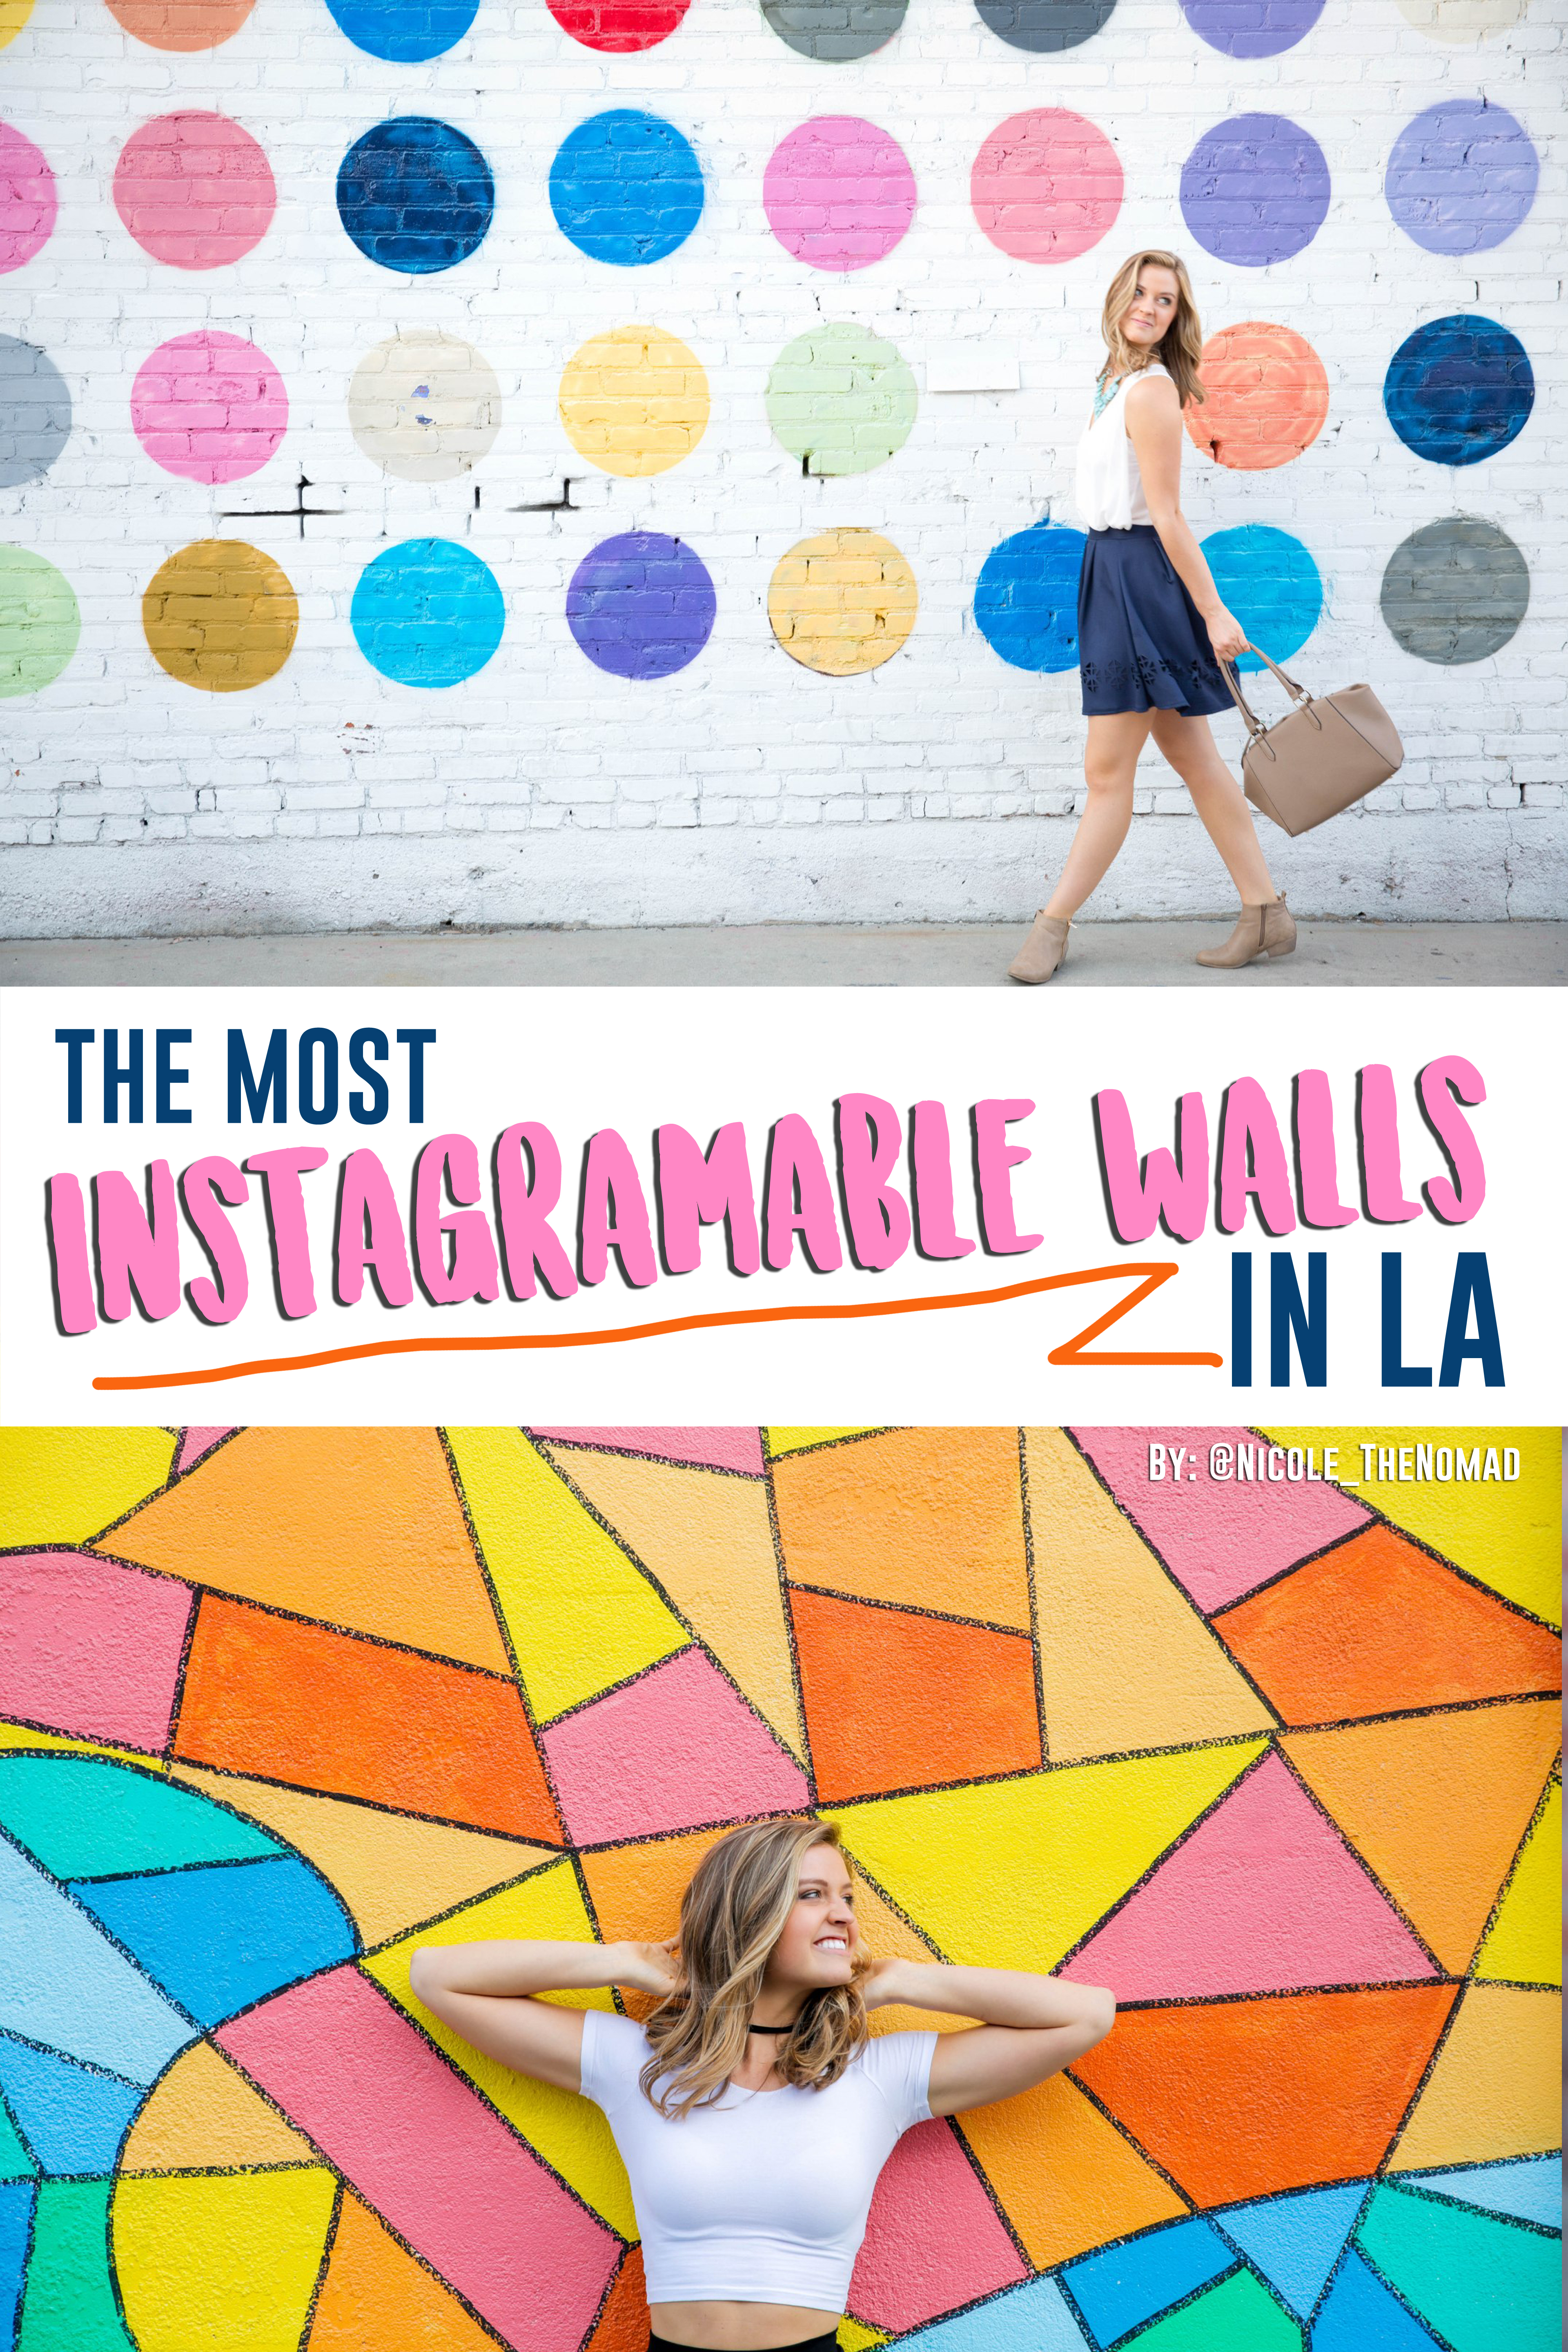 The Most Instagram-able Walls In LA